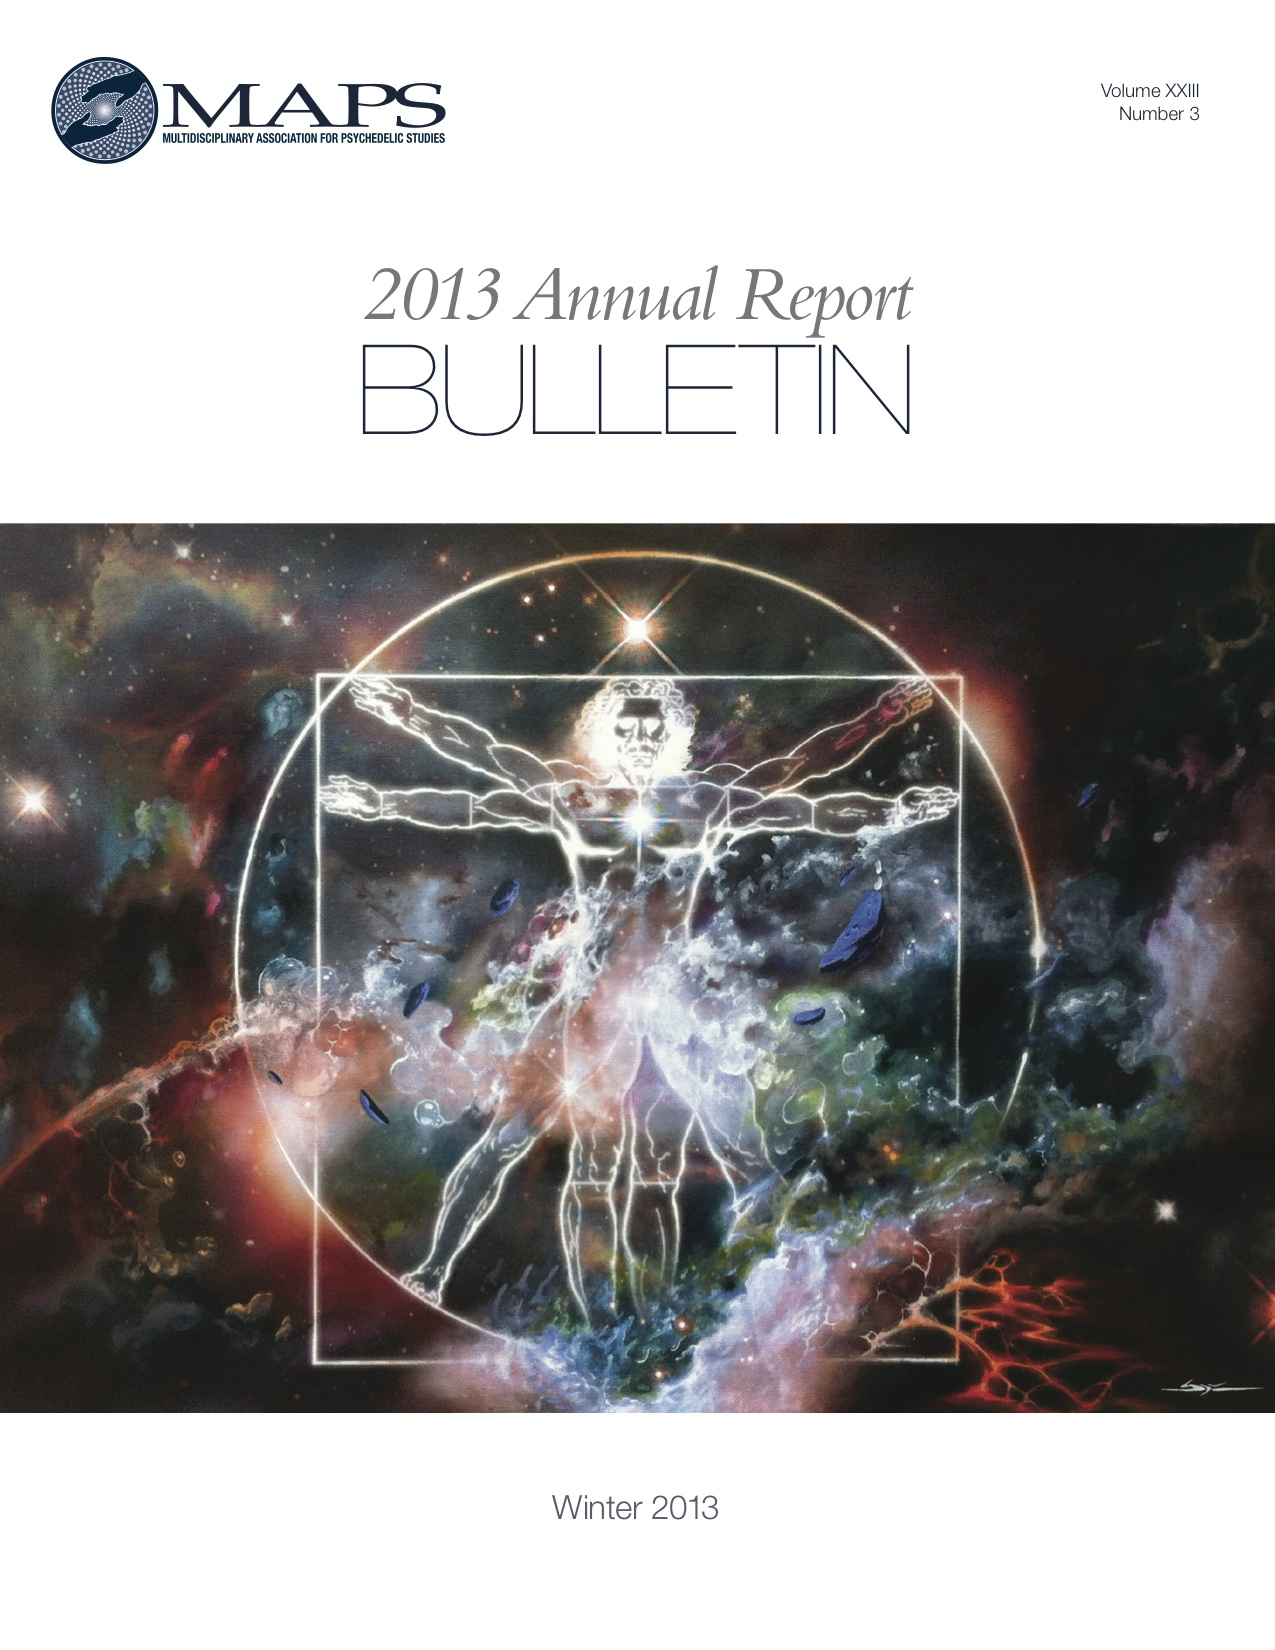 MAPS Bulletin Winter 2013: 2013 Annual Report